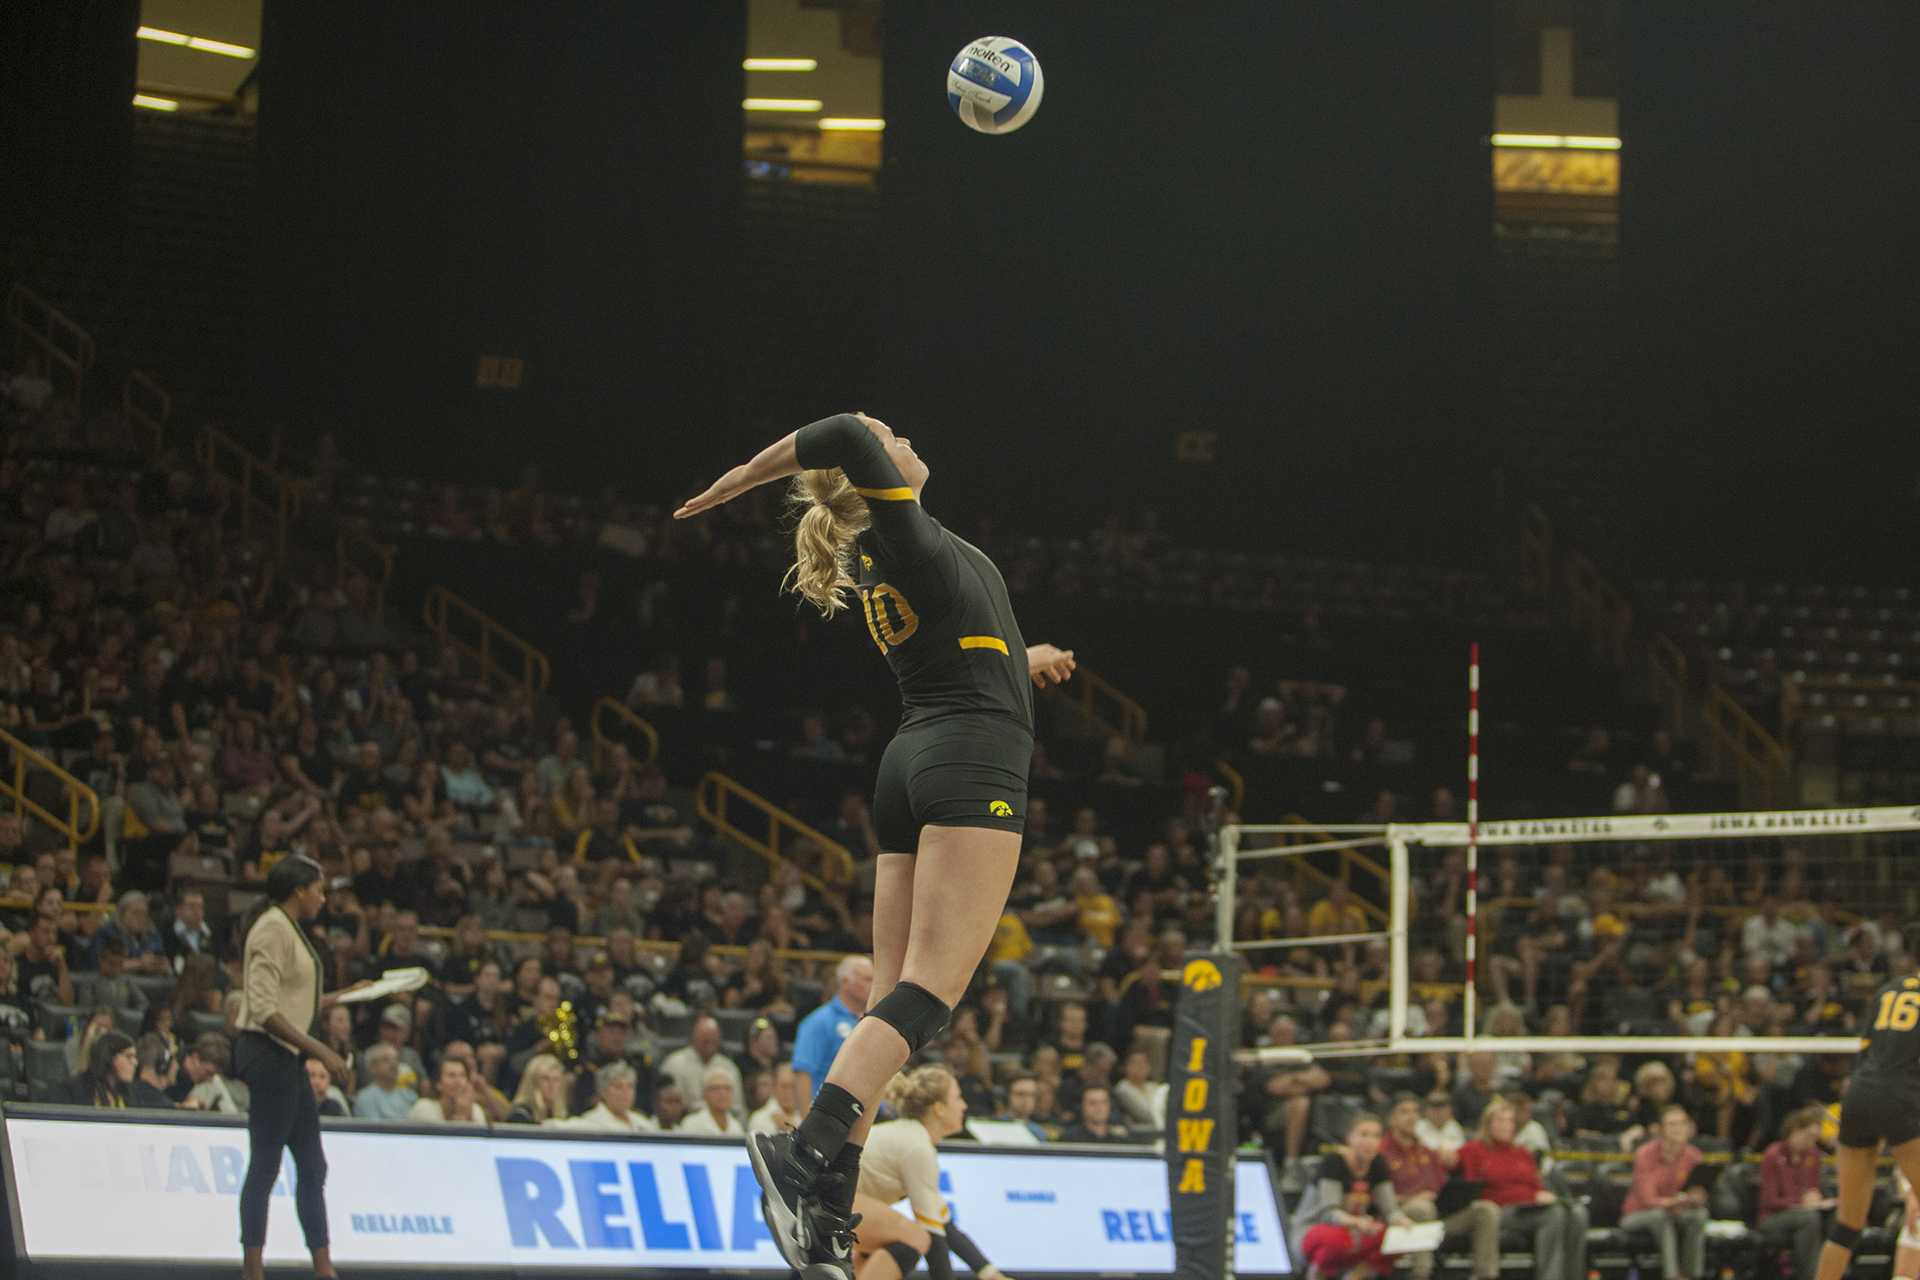 Iowa OH Claire Sheehan serves the ball during the match between Iowa and Iowa State inside Carver-Hawkeye Arena on Friday, September 8, 2017. The Hawkeyes fell to the Cyclones 3-1. (Shivansh Ahuja/The Daily Iowan)